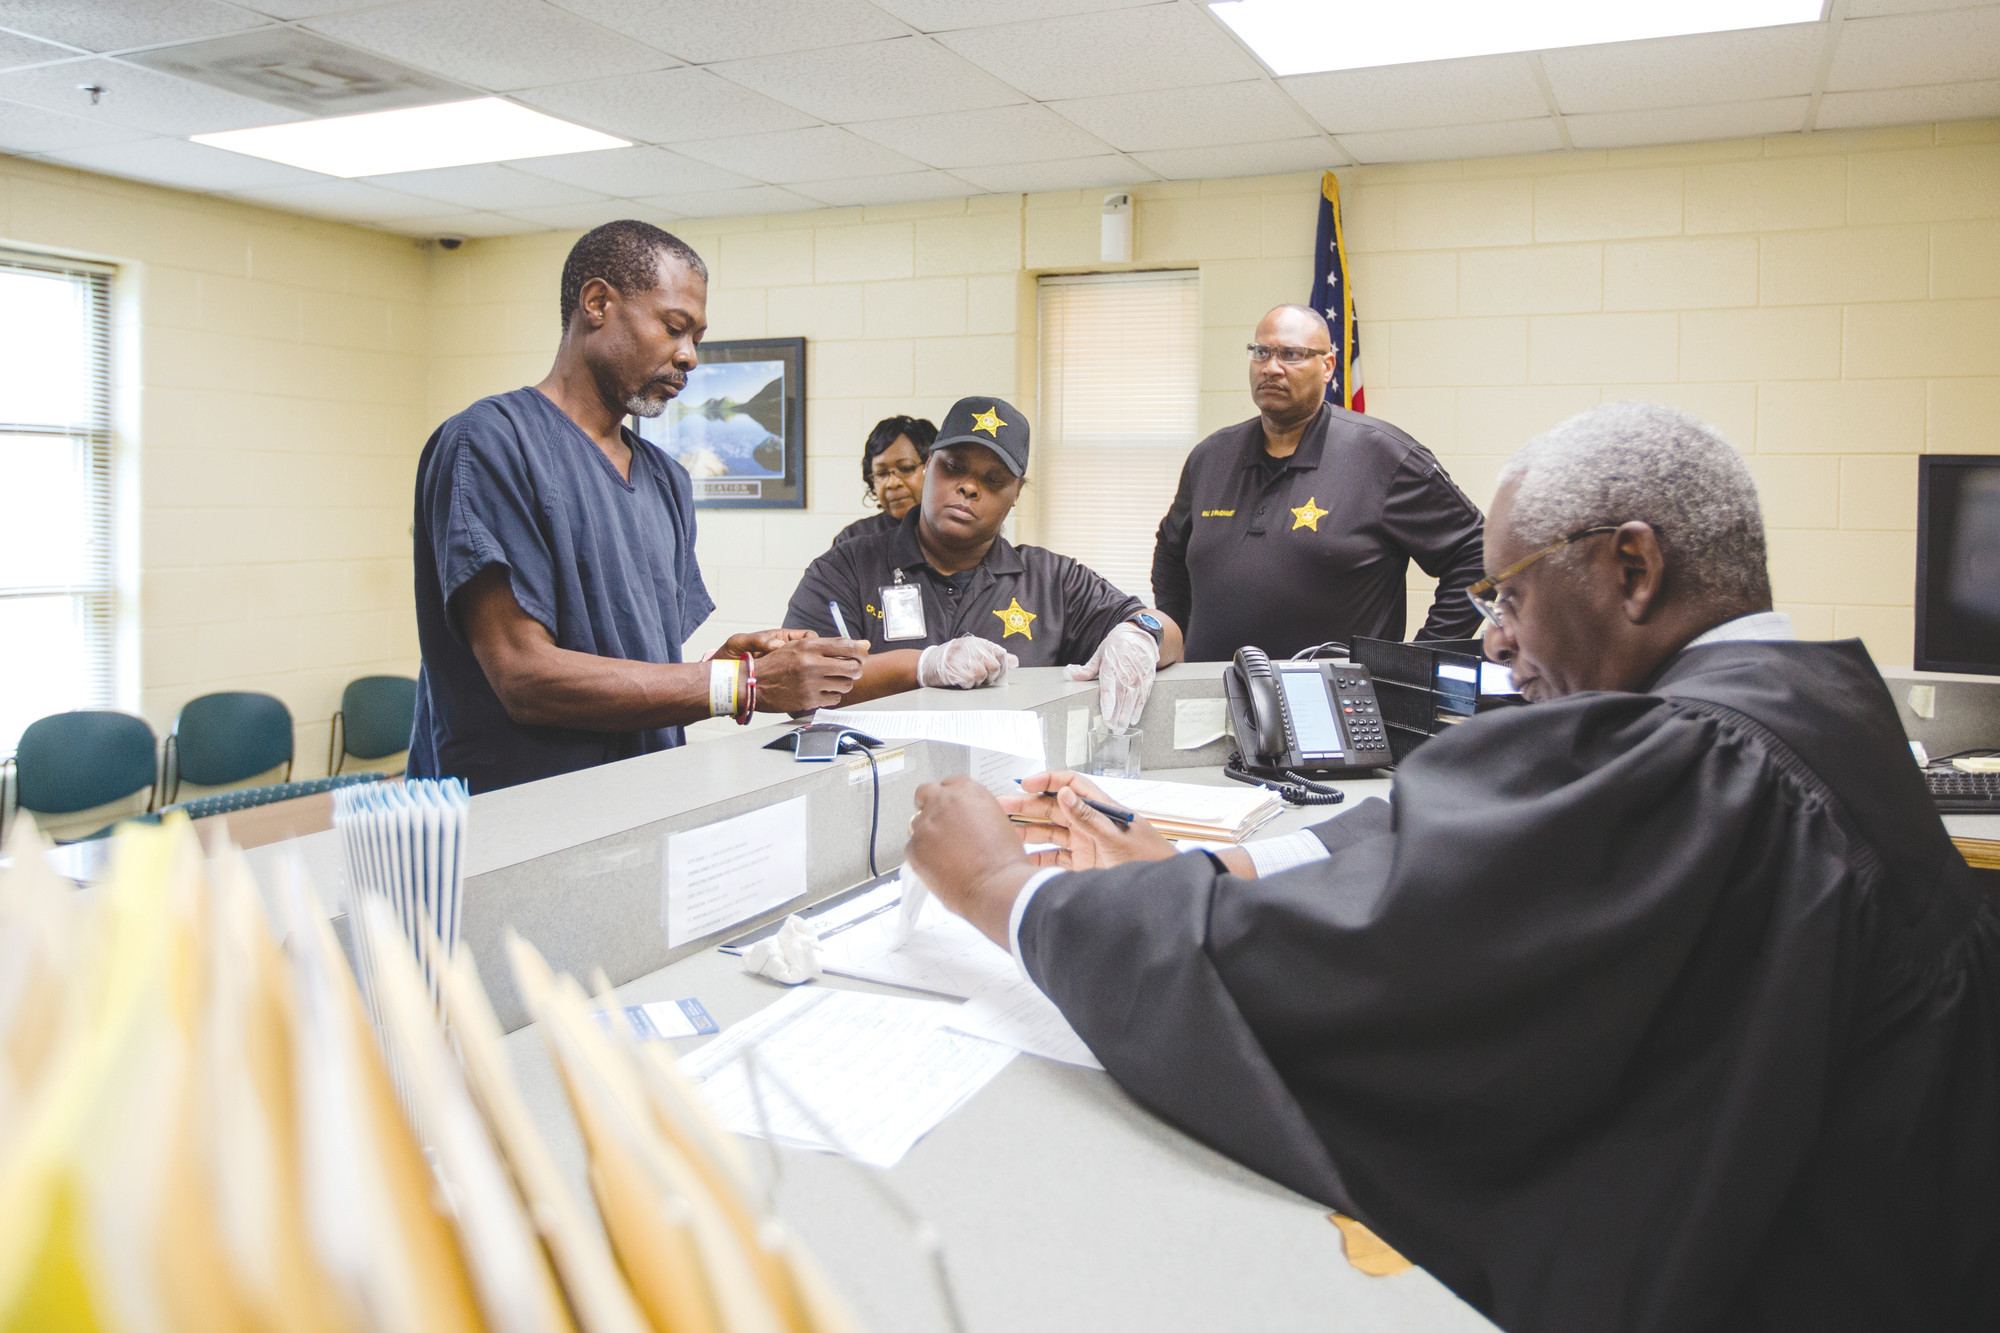 Alonzo Shaw, 50, signs documents during a first appearance hearing lead by Magistrate Judge Larry Blanding at Sumter-Lee Regional Detention Center on Friday.